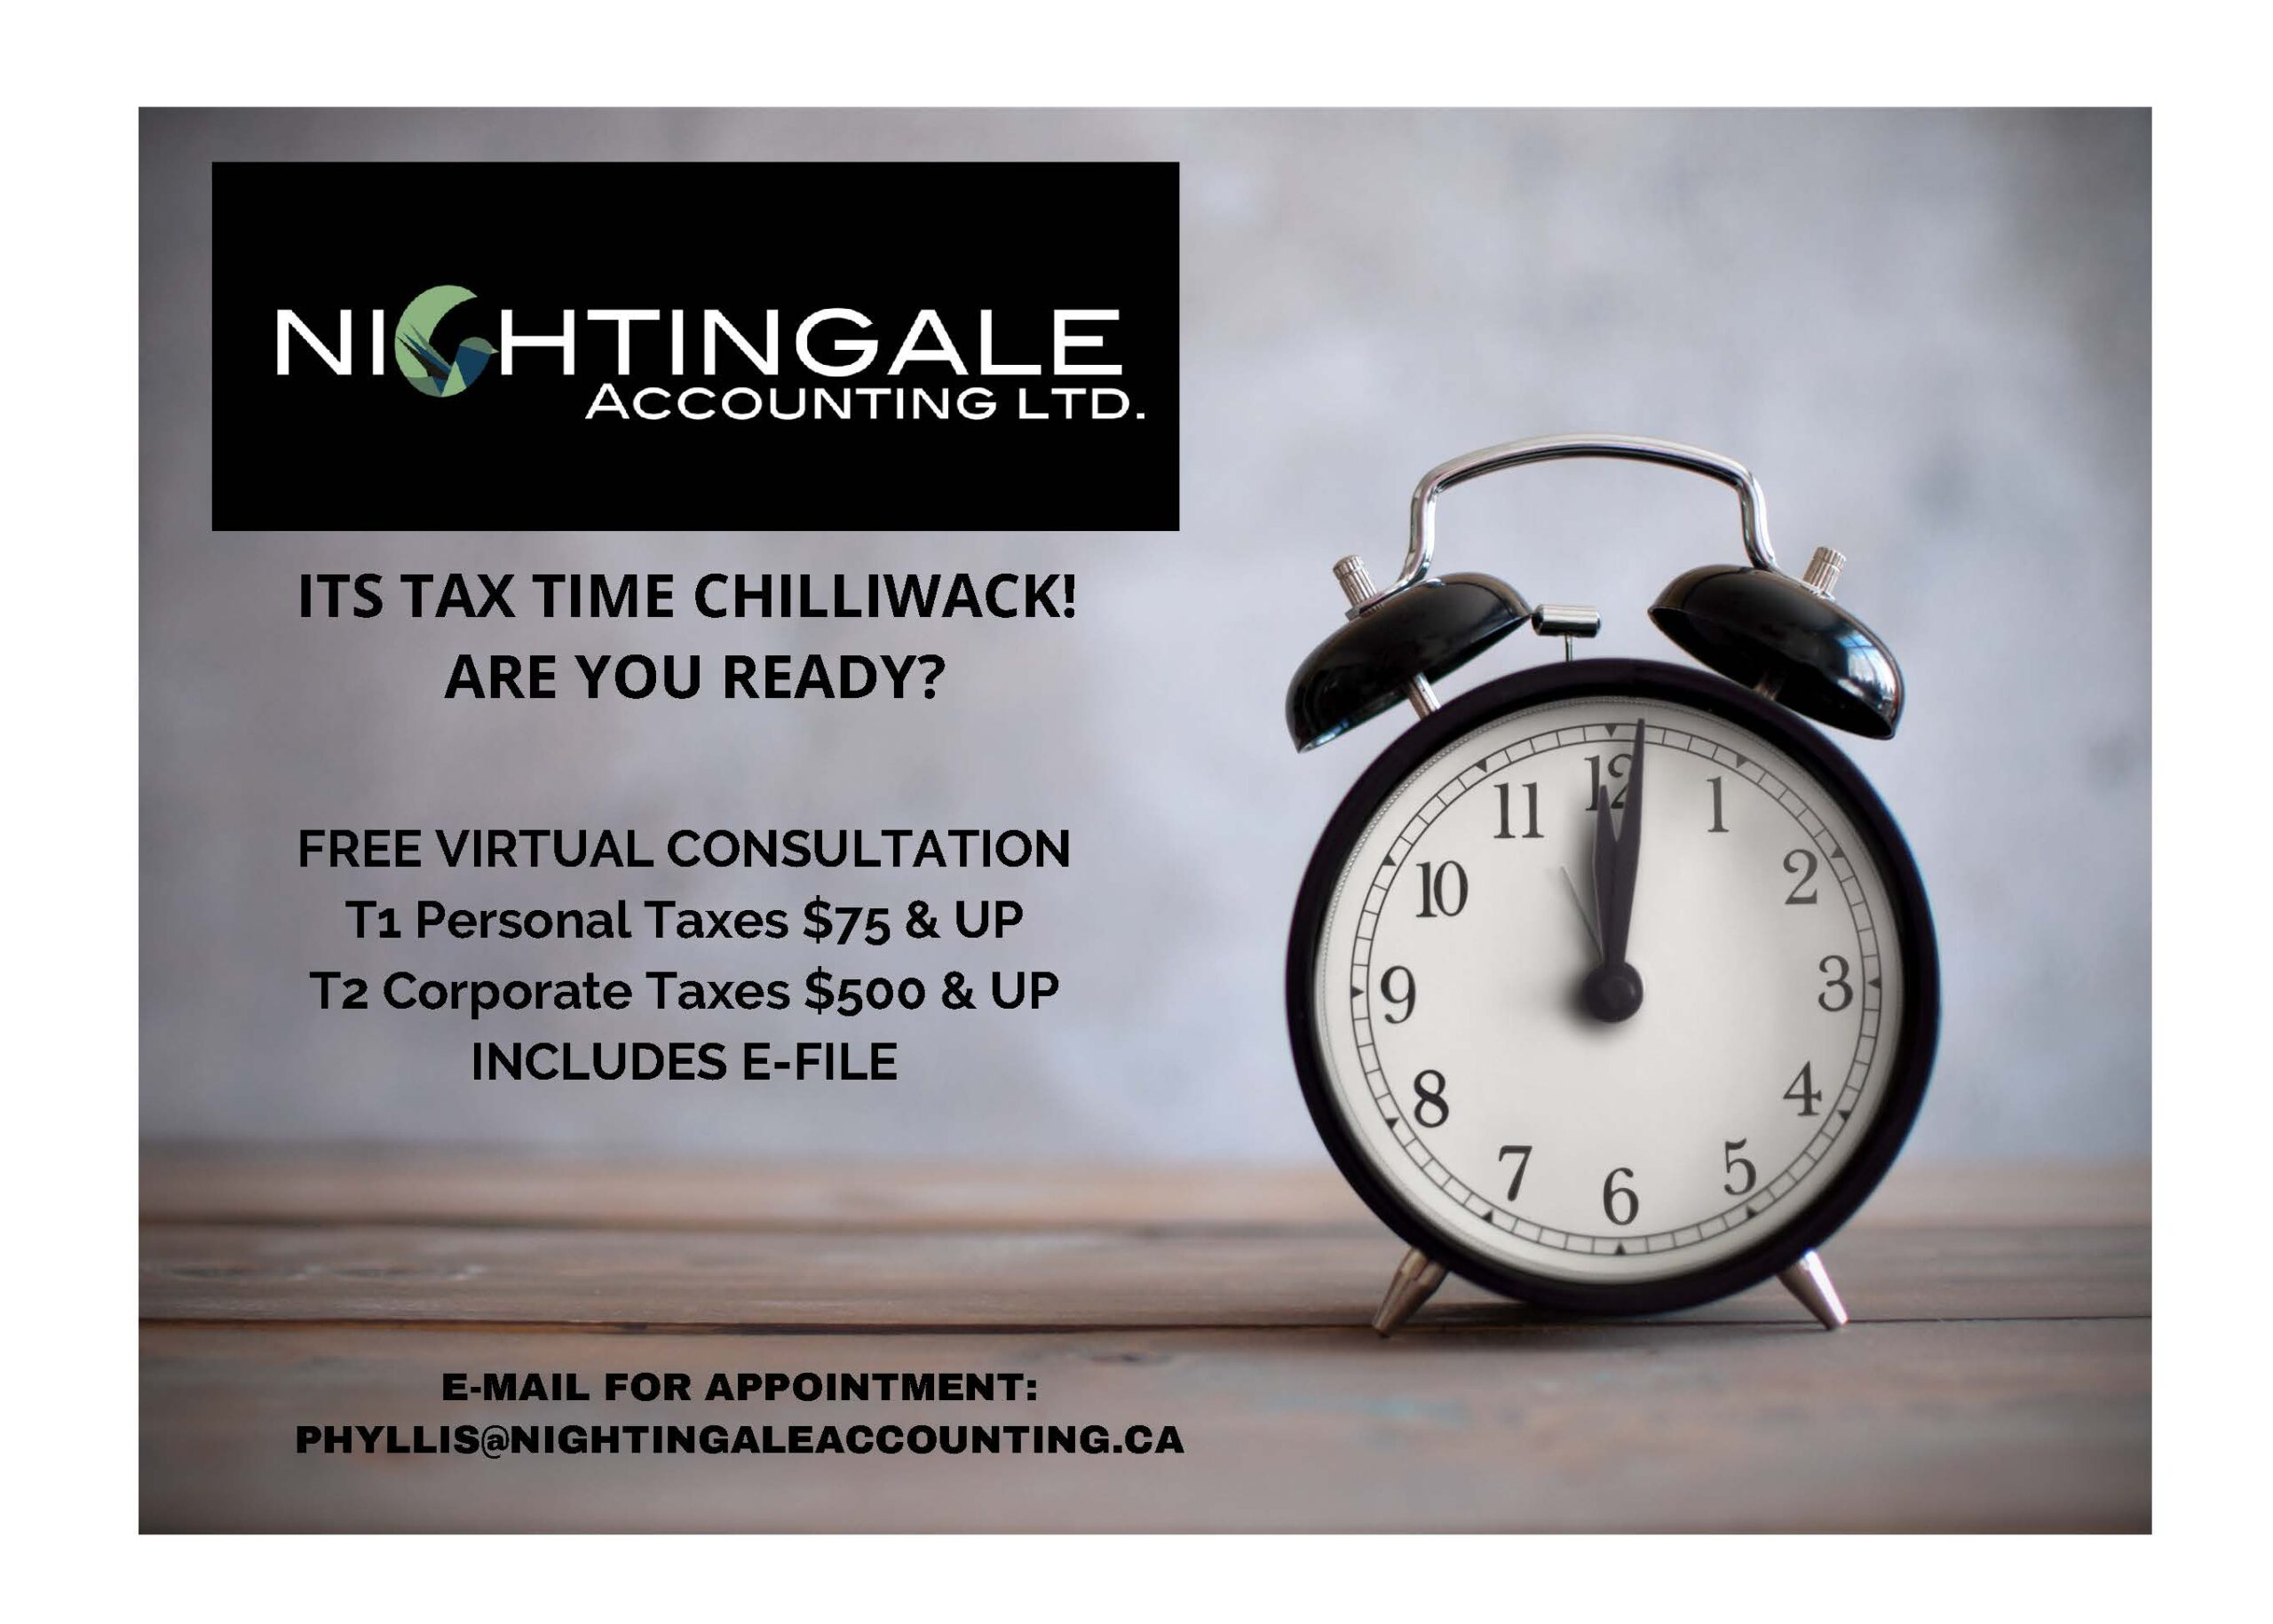 Tax Time Chilliwack Ad